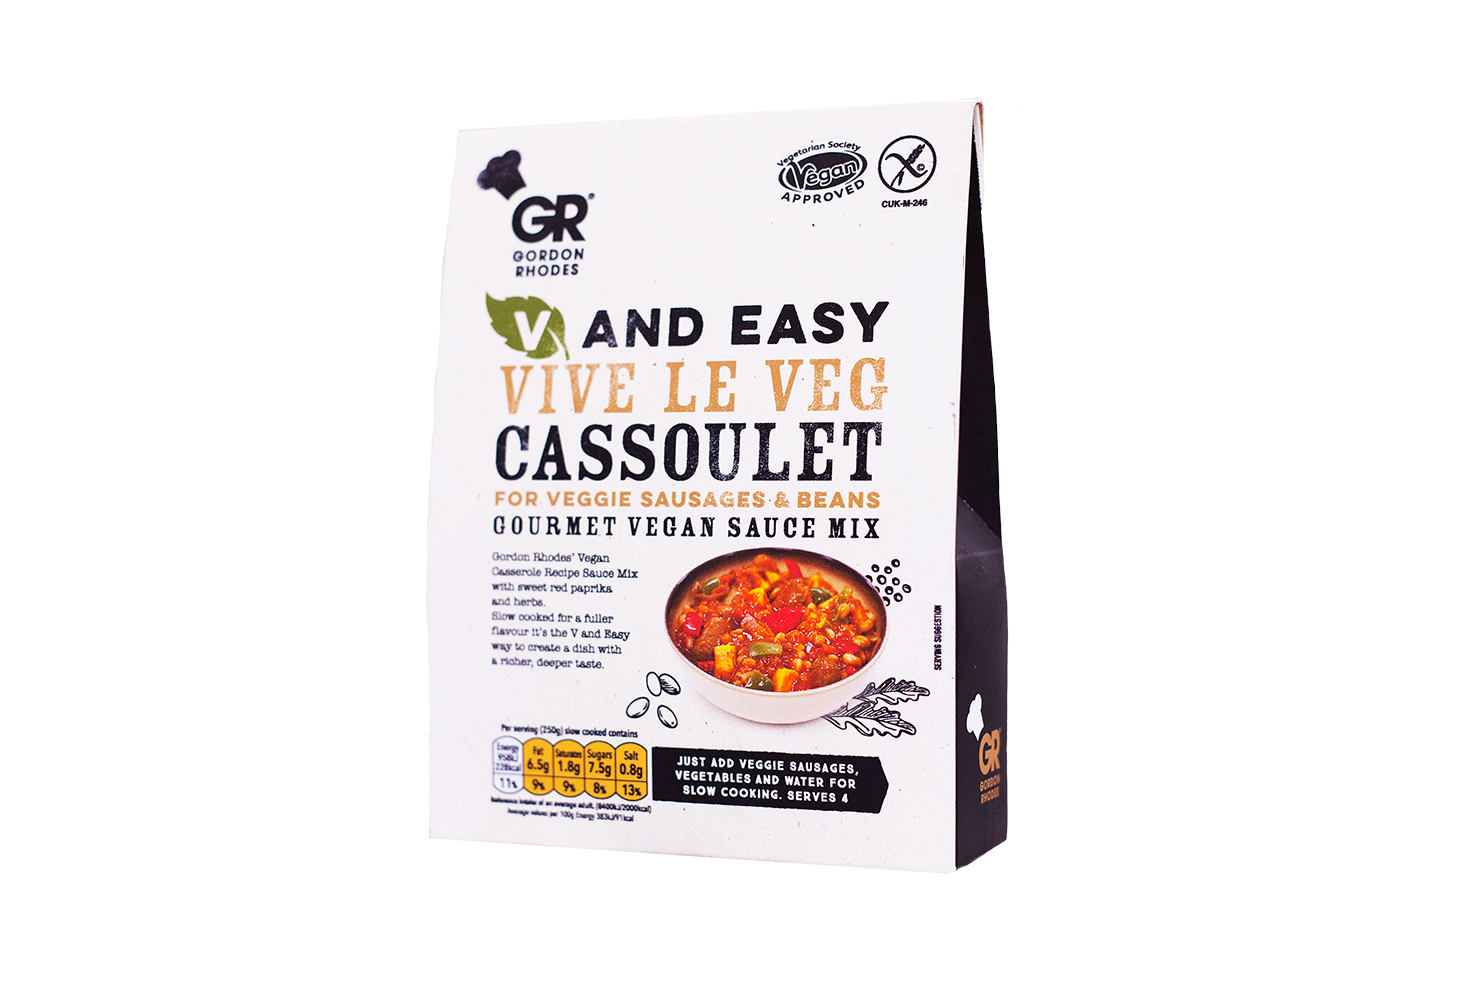 GR V & EASY VEG CASSOULET SAUCE MIX SRP